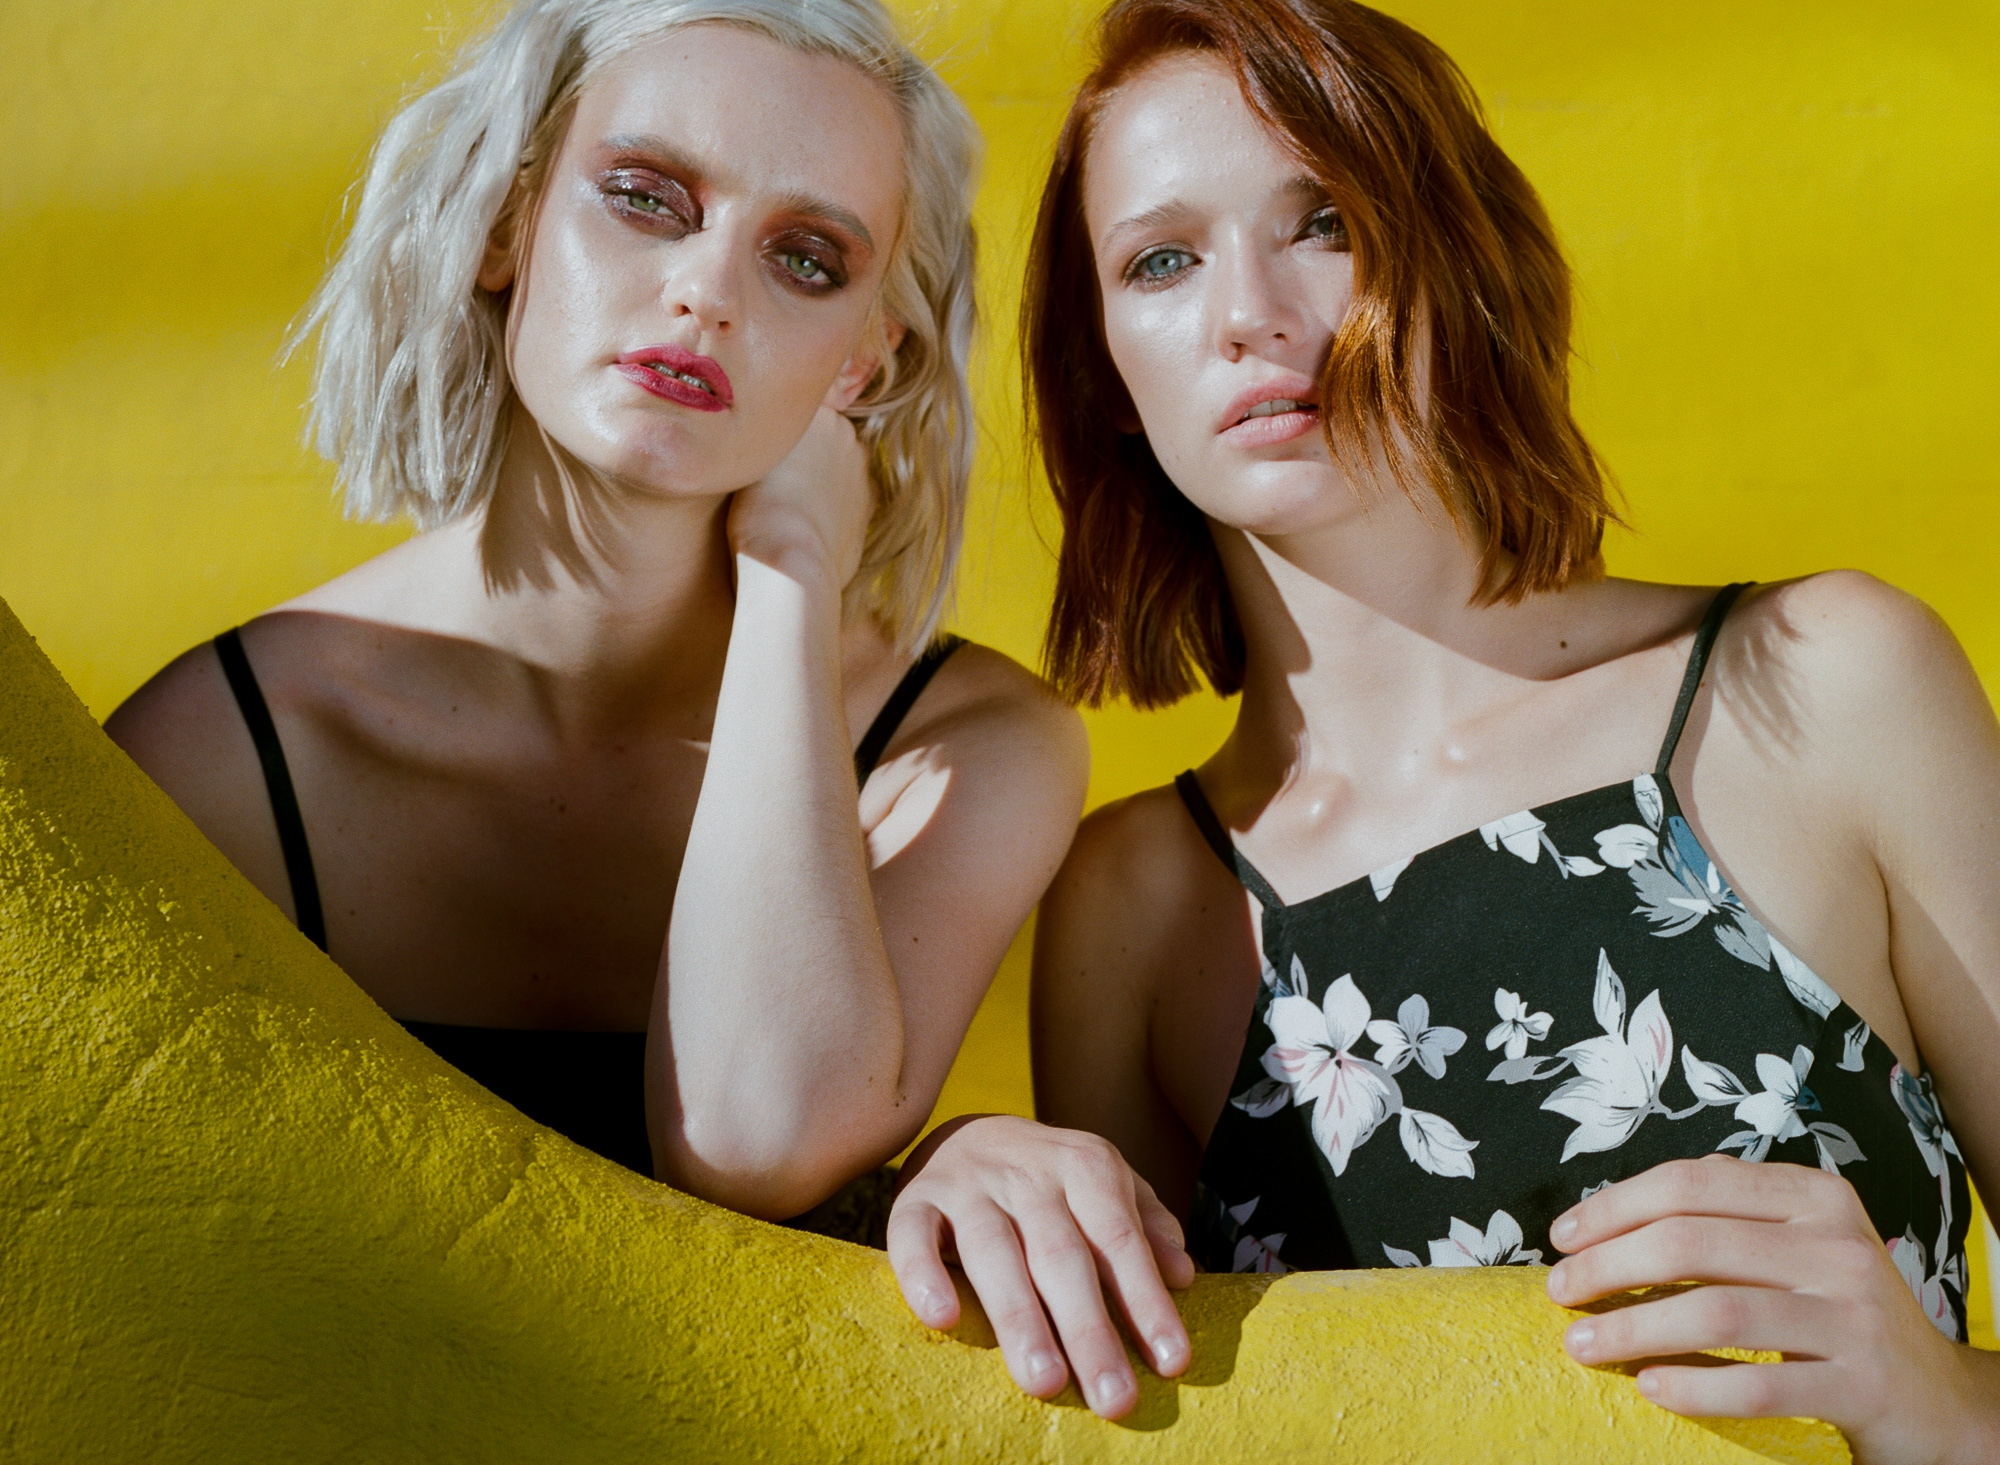 Model test with Abbie Wood and Sydney Barber on the streets of Surry Hills